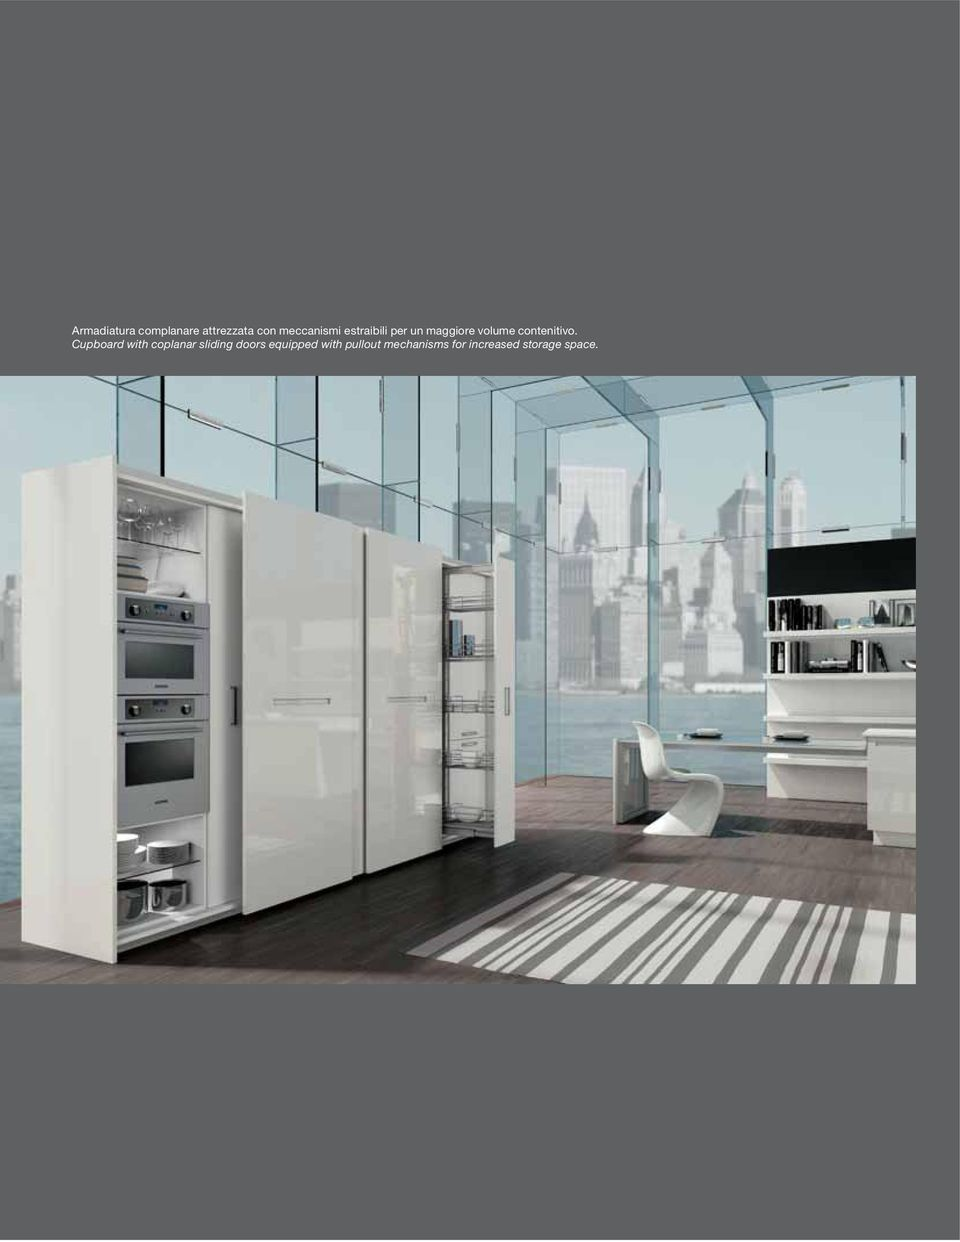 Cupboard with coplanar sliding doors equipped